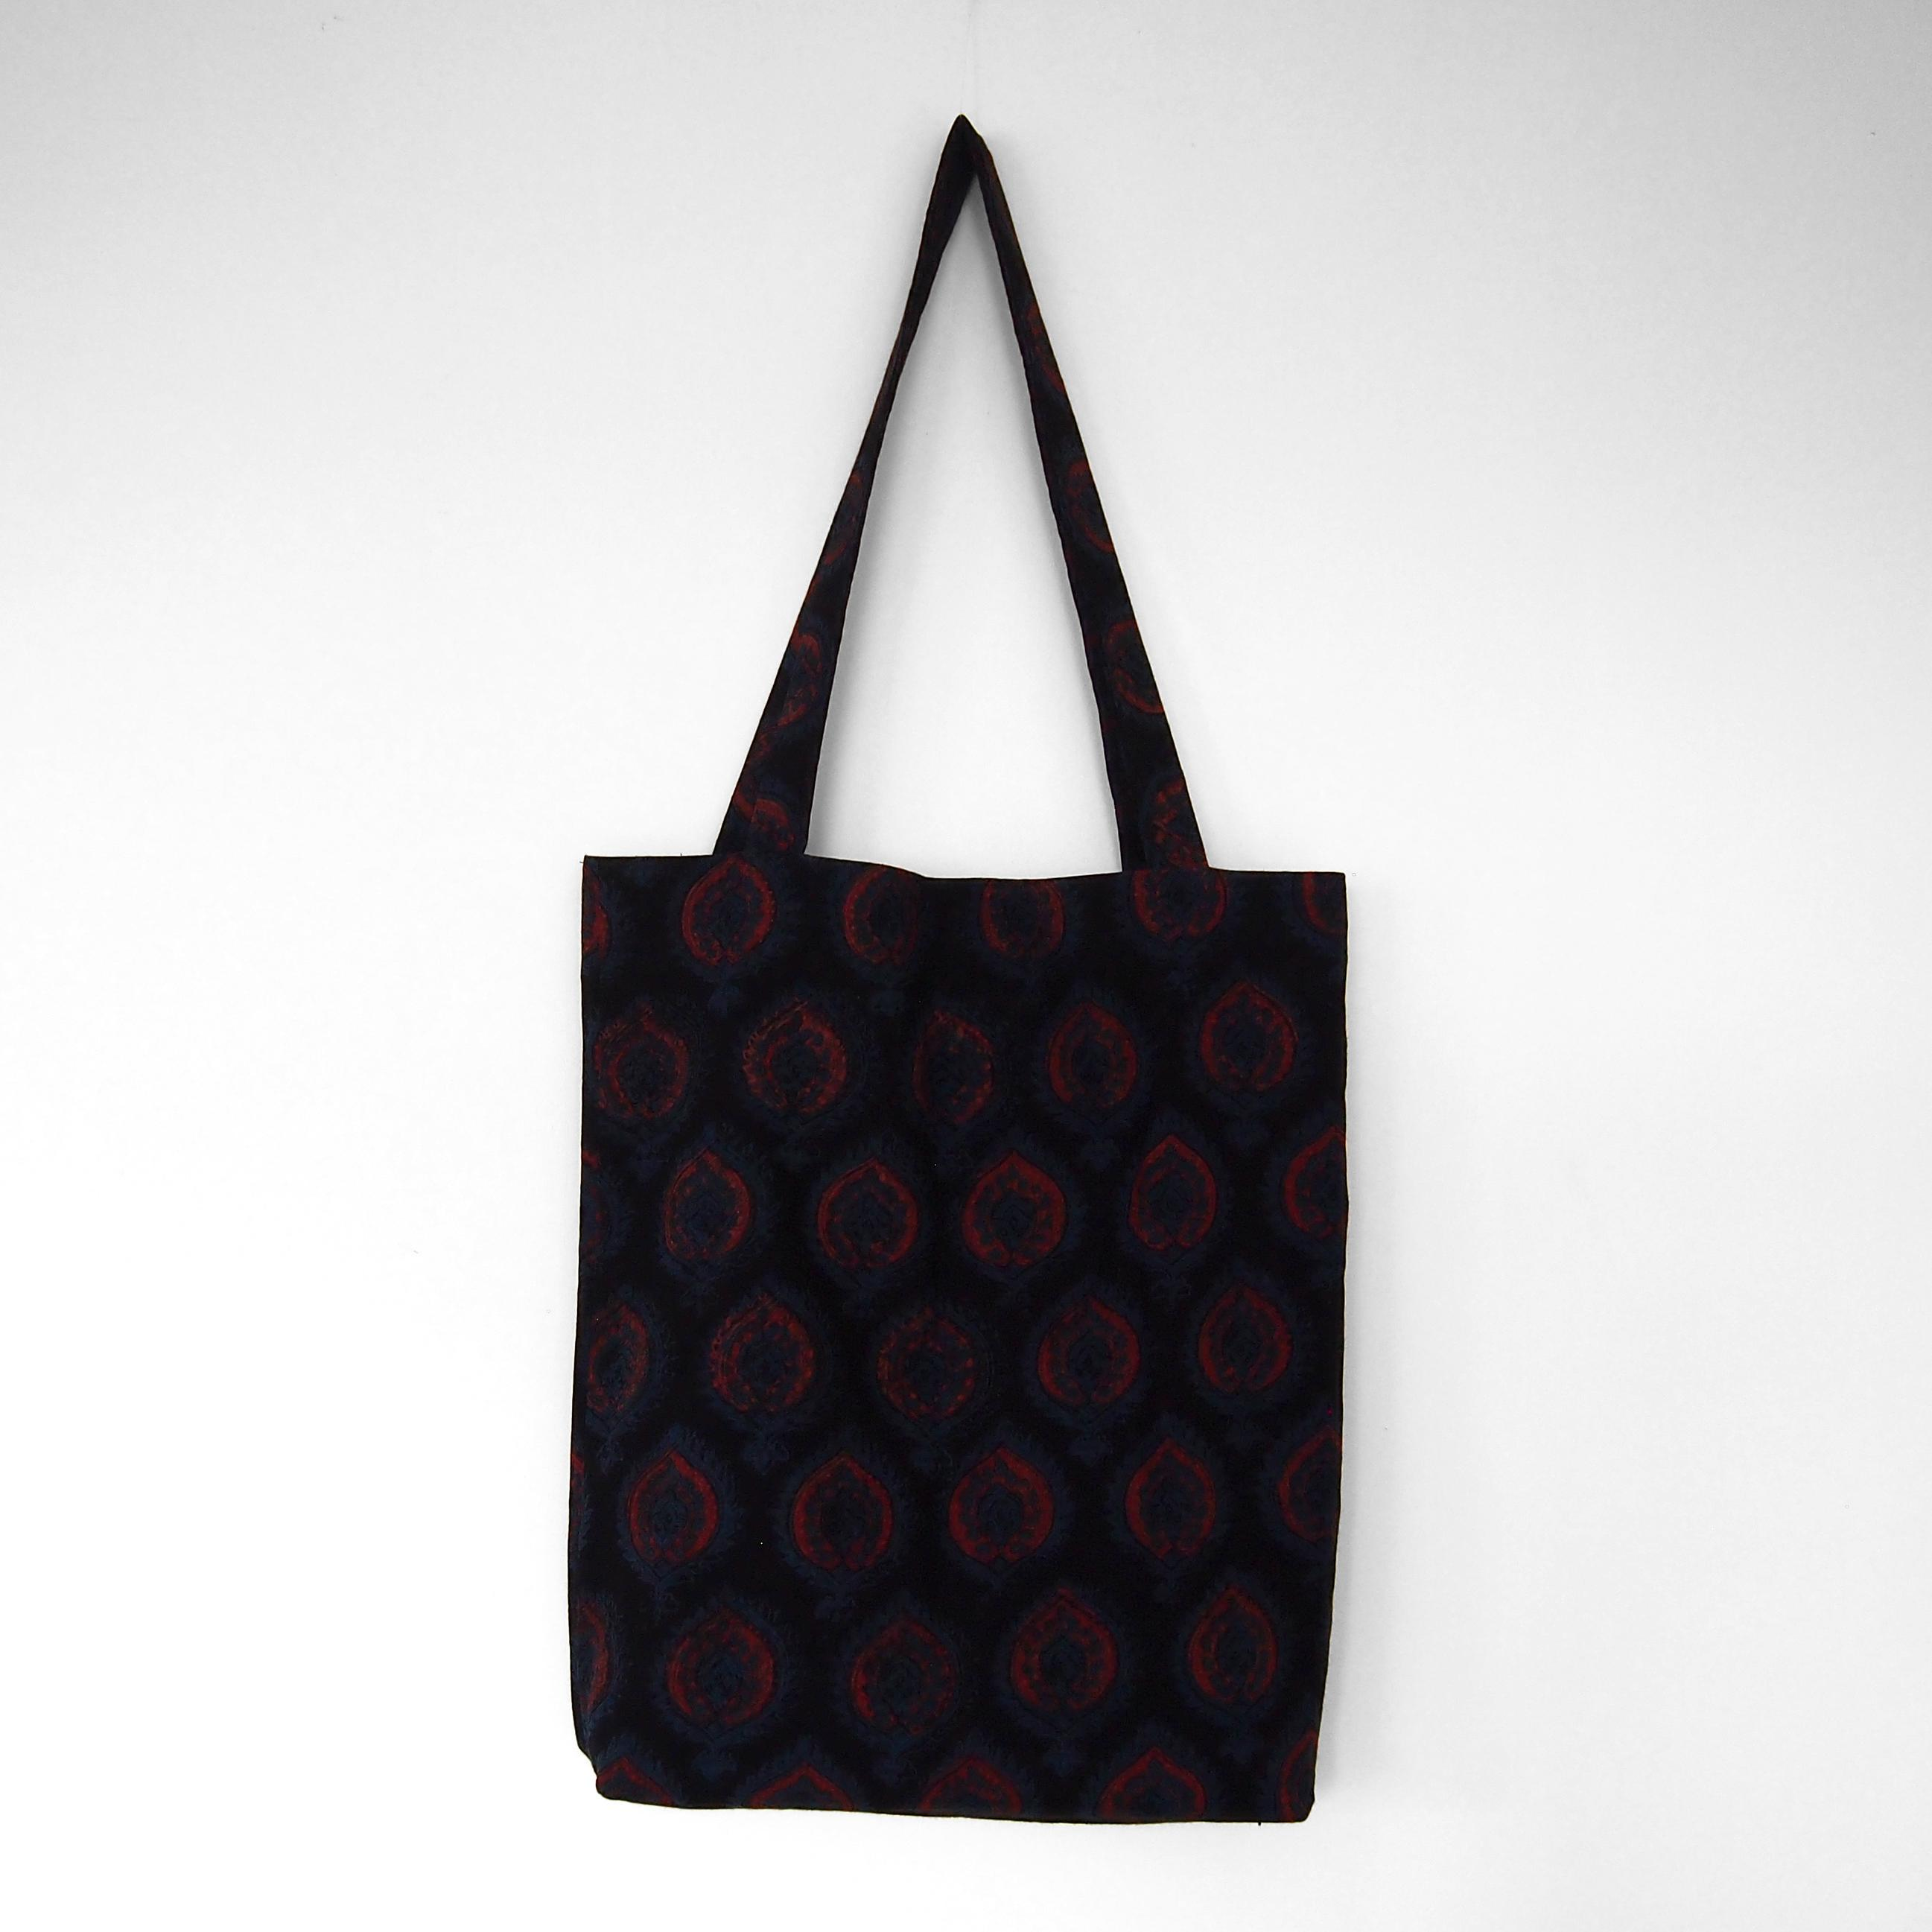 block printed cotton tote bag, natural dye, black, blue red crest design, lined with black cotton, closed